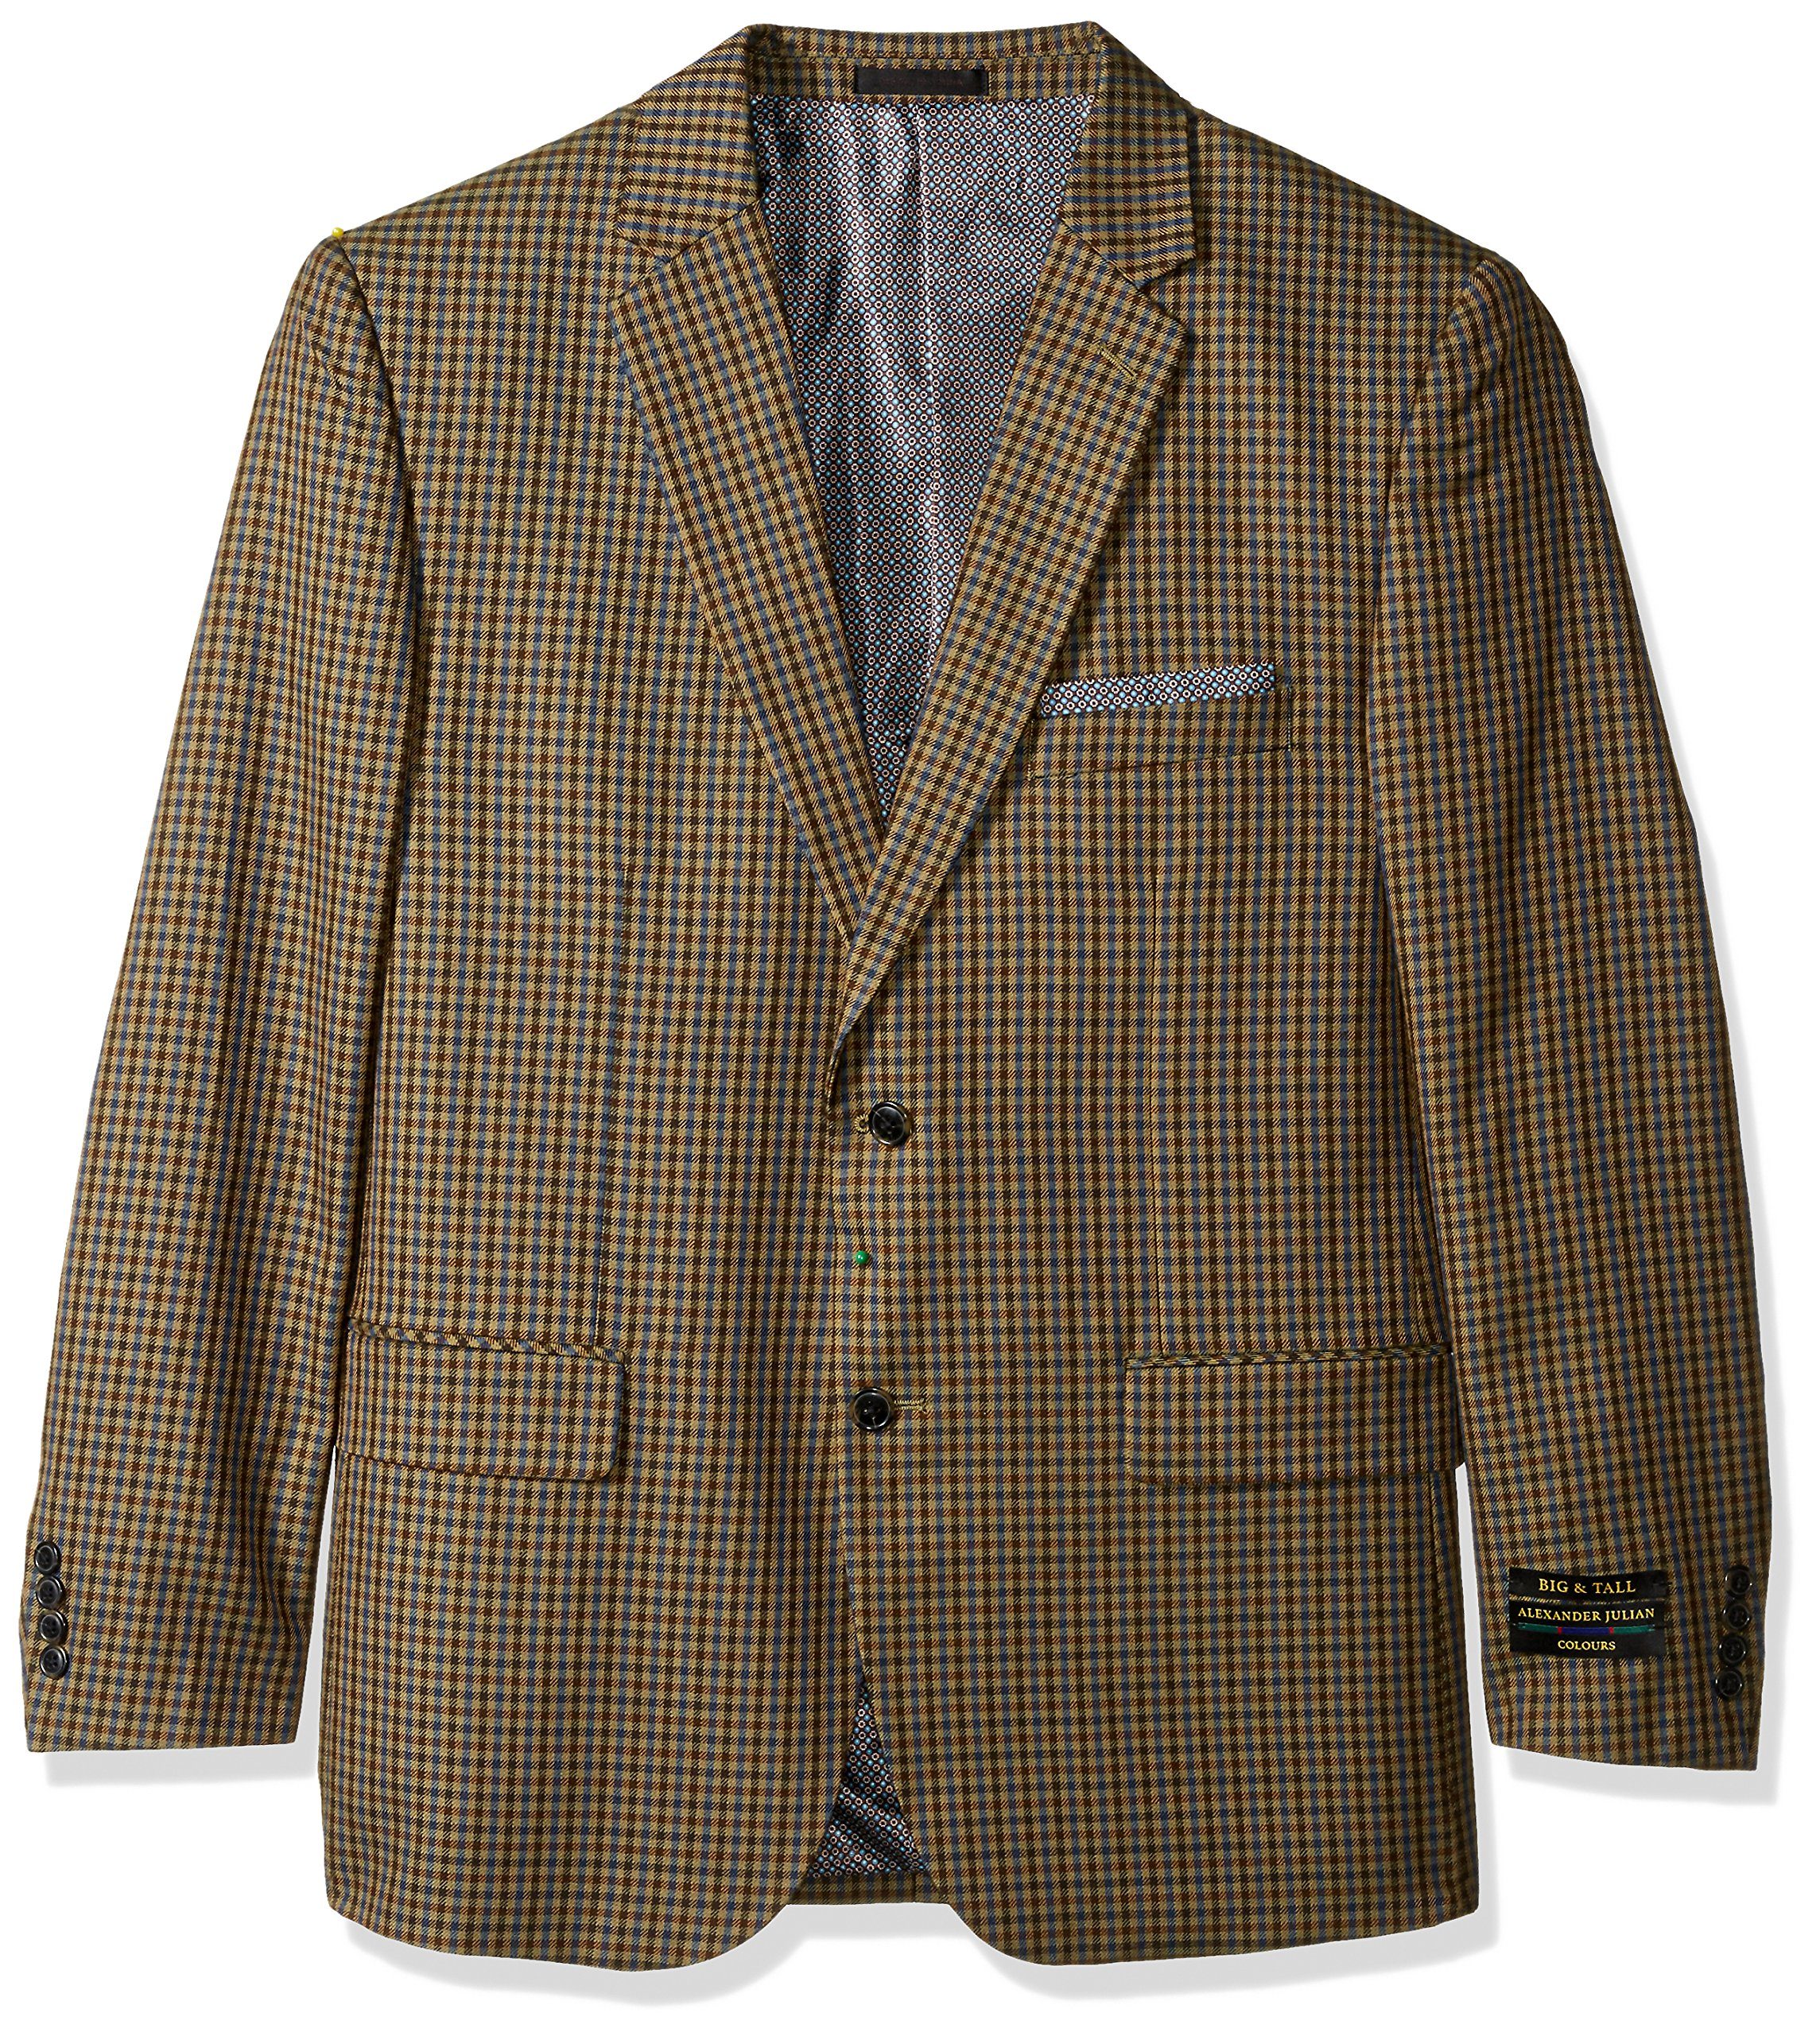 Alexander Julian Colours Men's Big and Tall Single Breasted Modern Fit Check Sportcoat, Tan/Blue, 54 Regular by Alexander Julian Colours